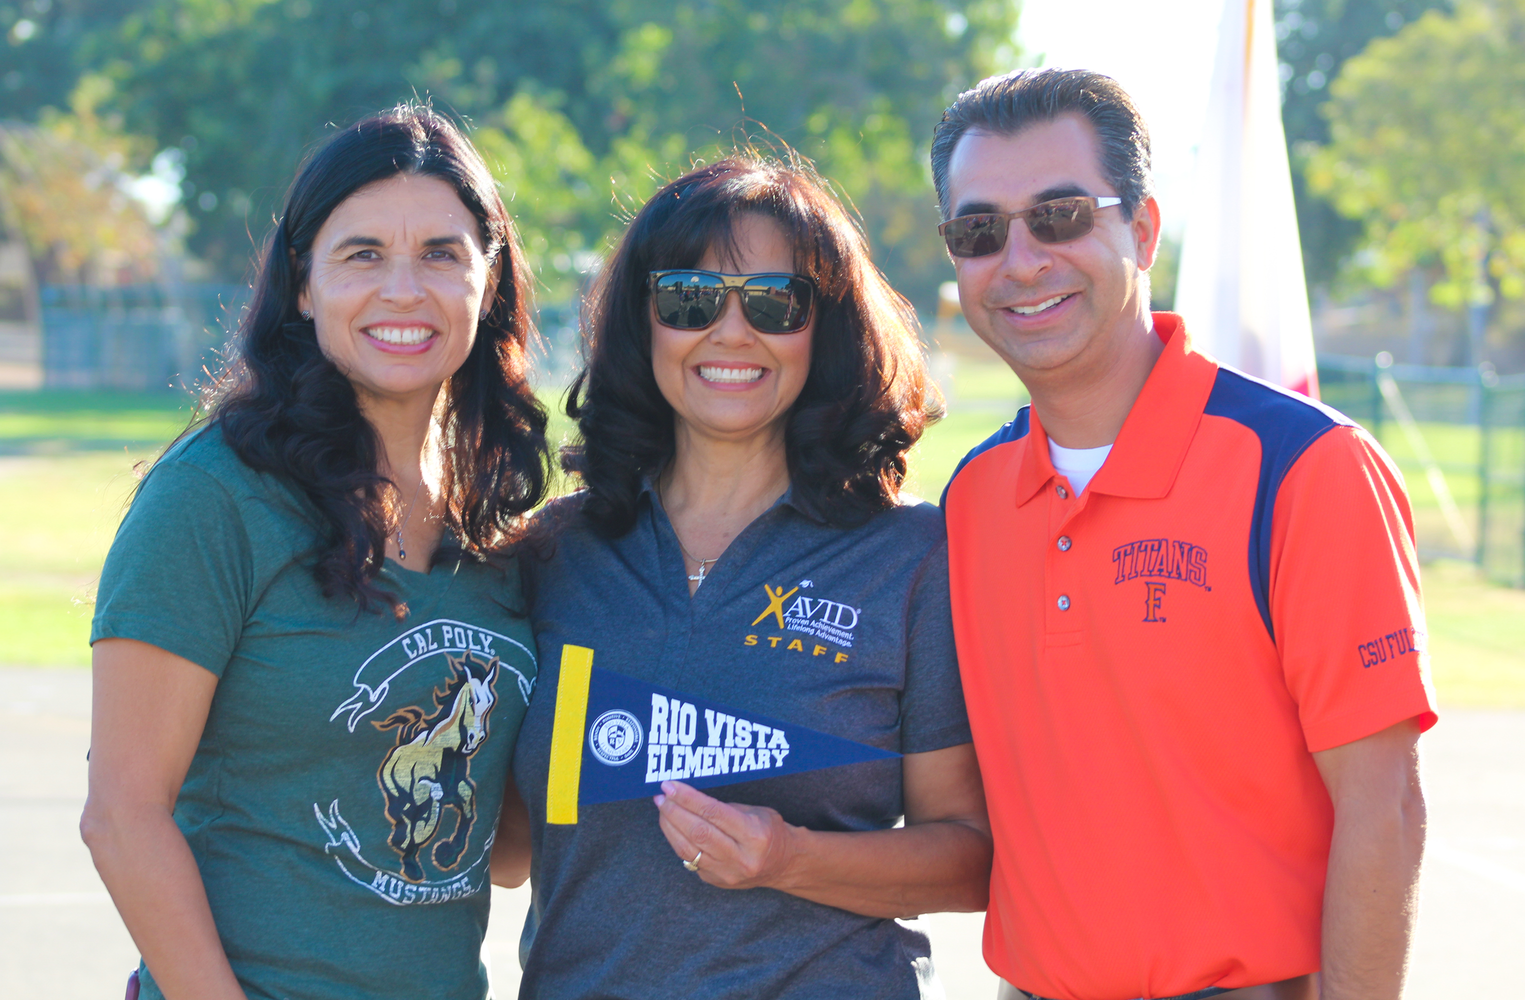 PYLUSD employees posing together for a picture.